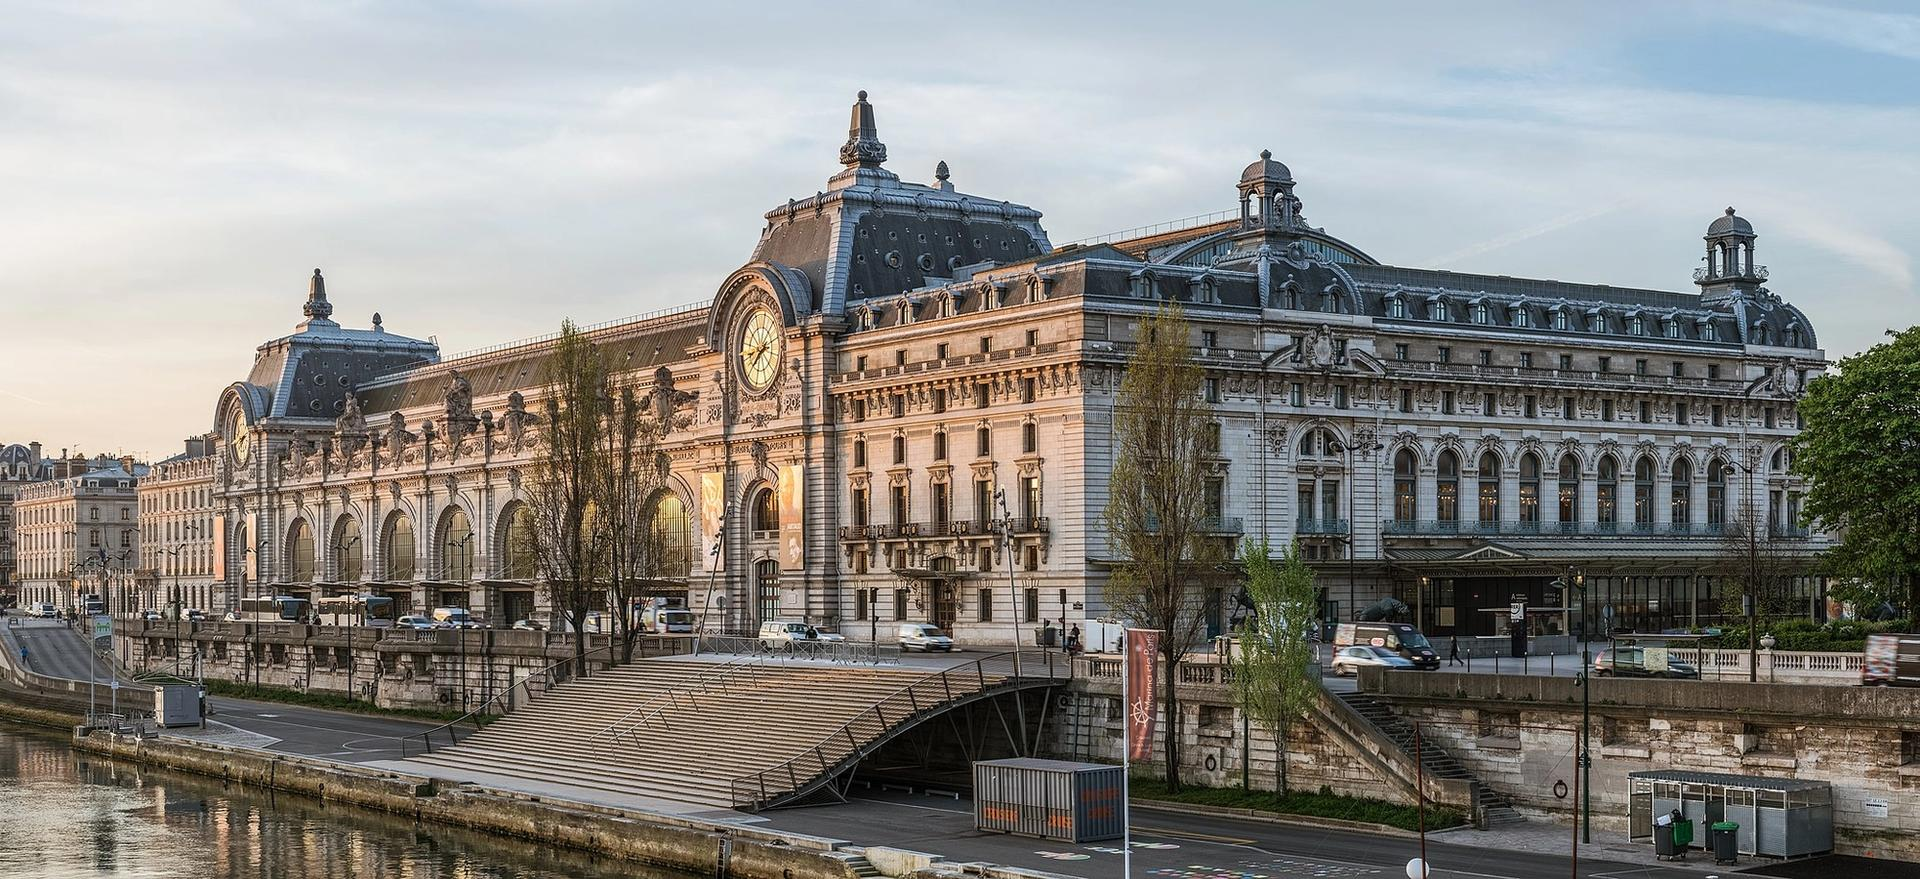 The Musée d'Orsay in Paris will be renamed after the late French president Valéry Giscard d'Estaing Photo: DXR